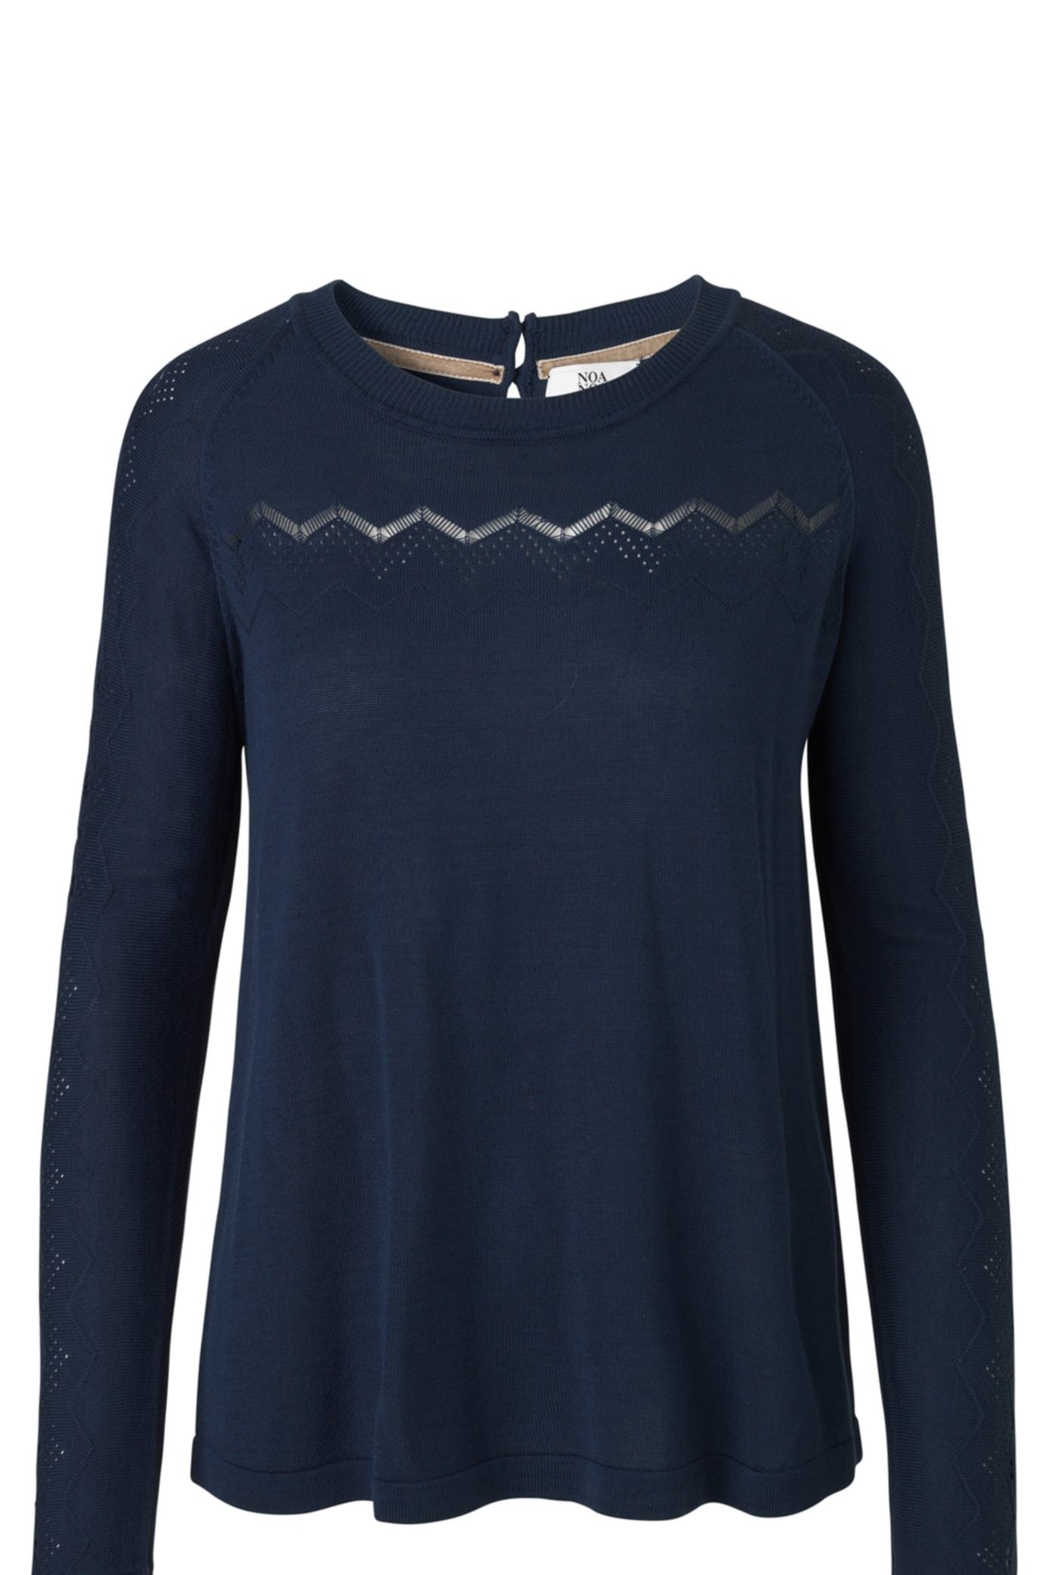 Noa Noa Navy Sweater - Main Image